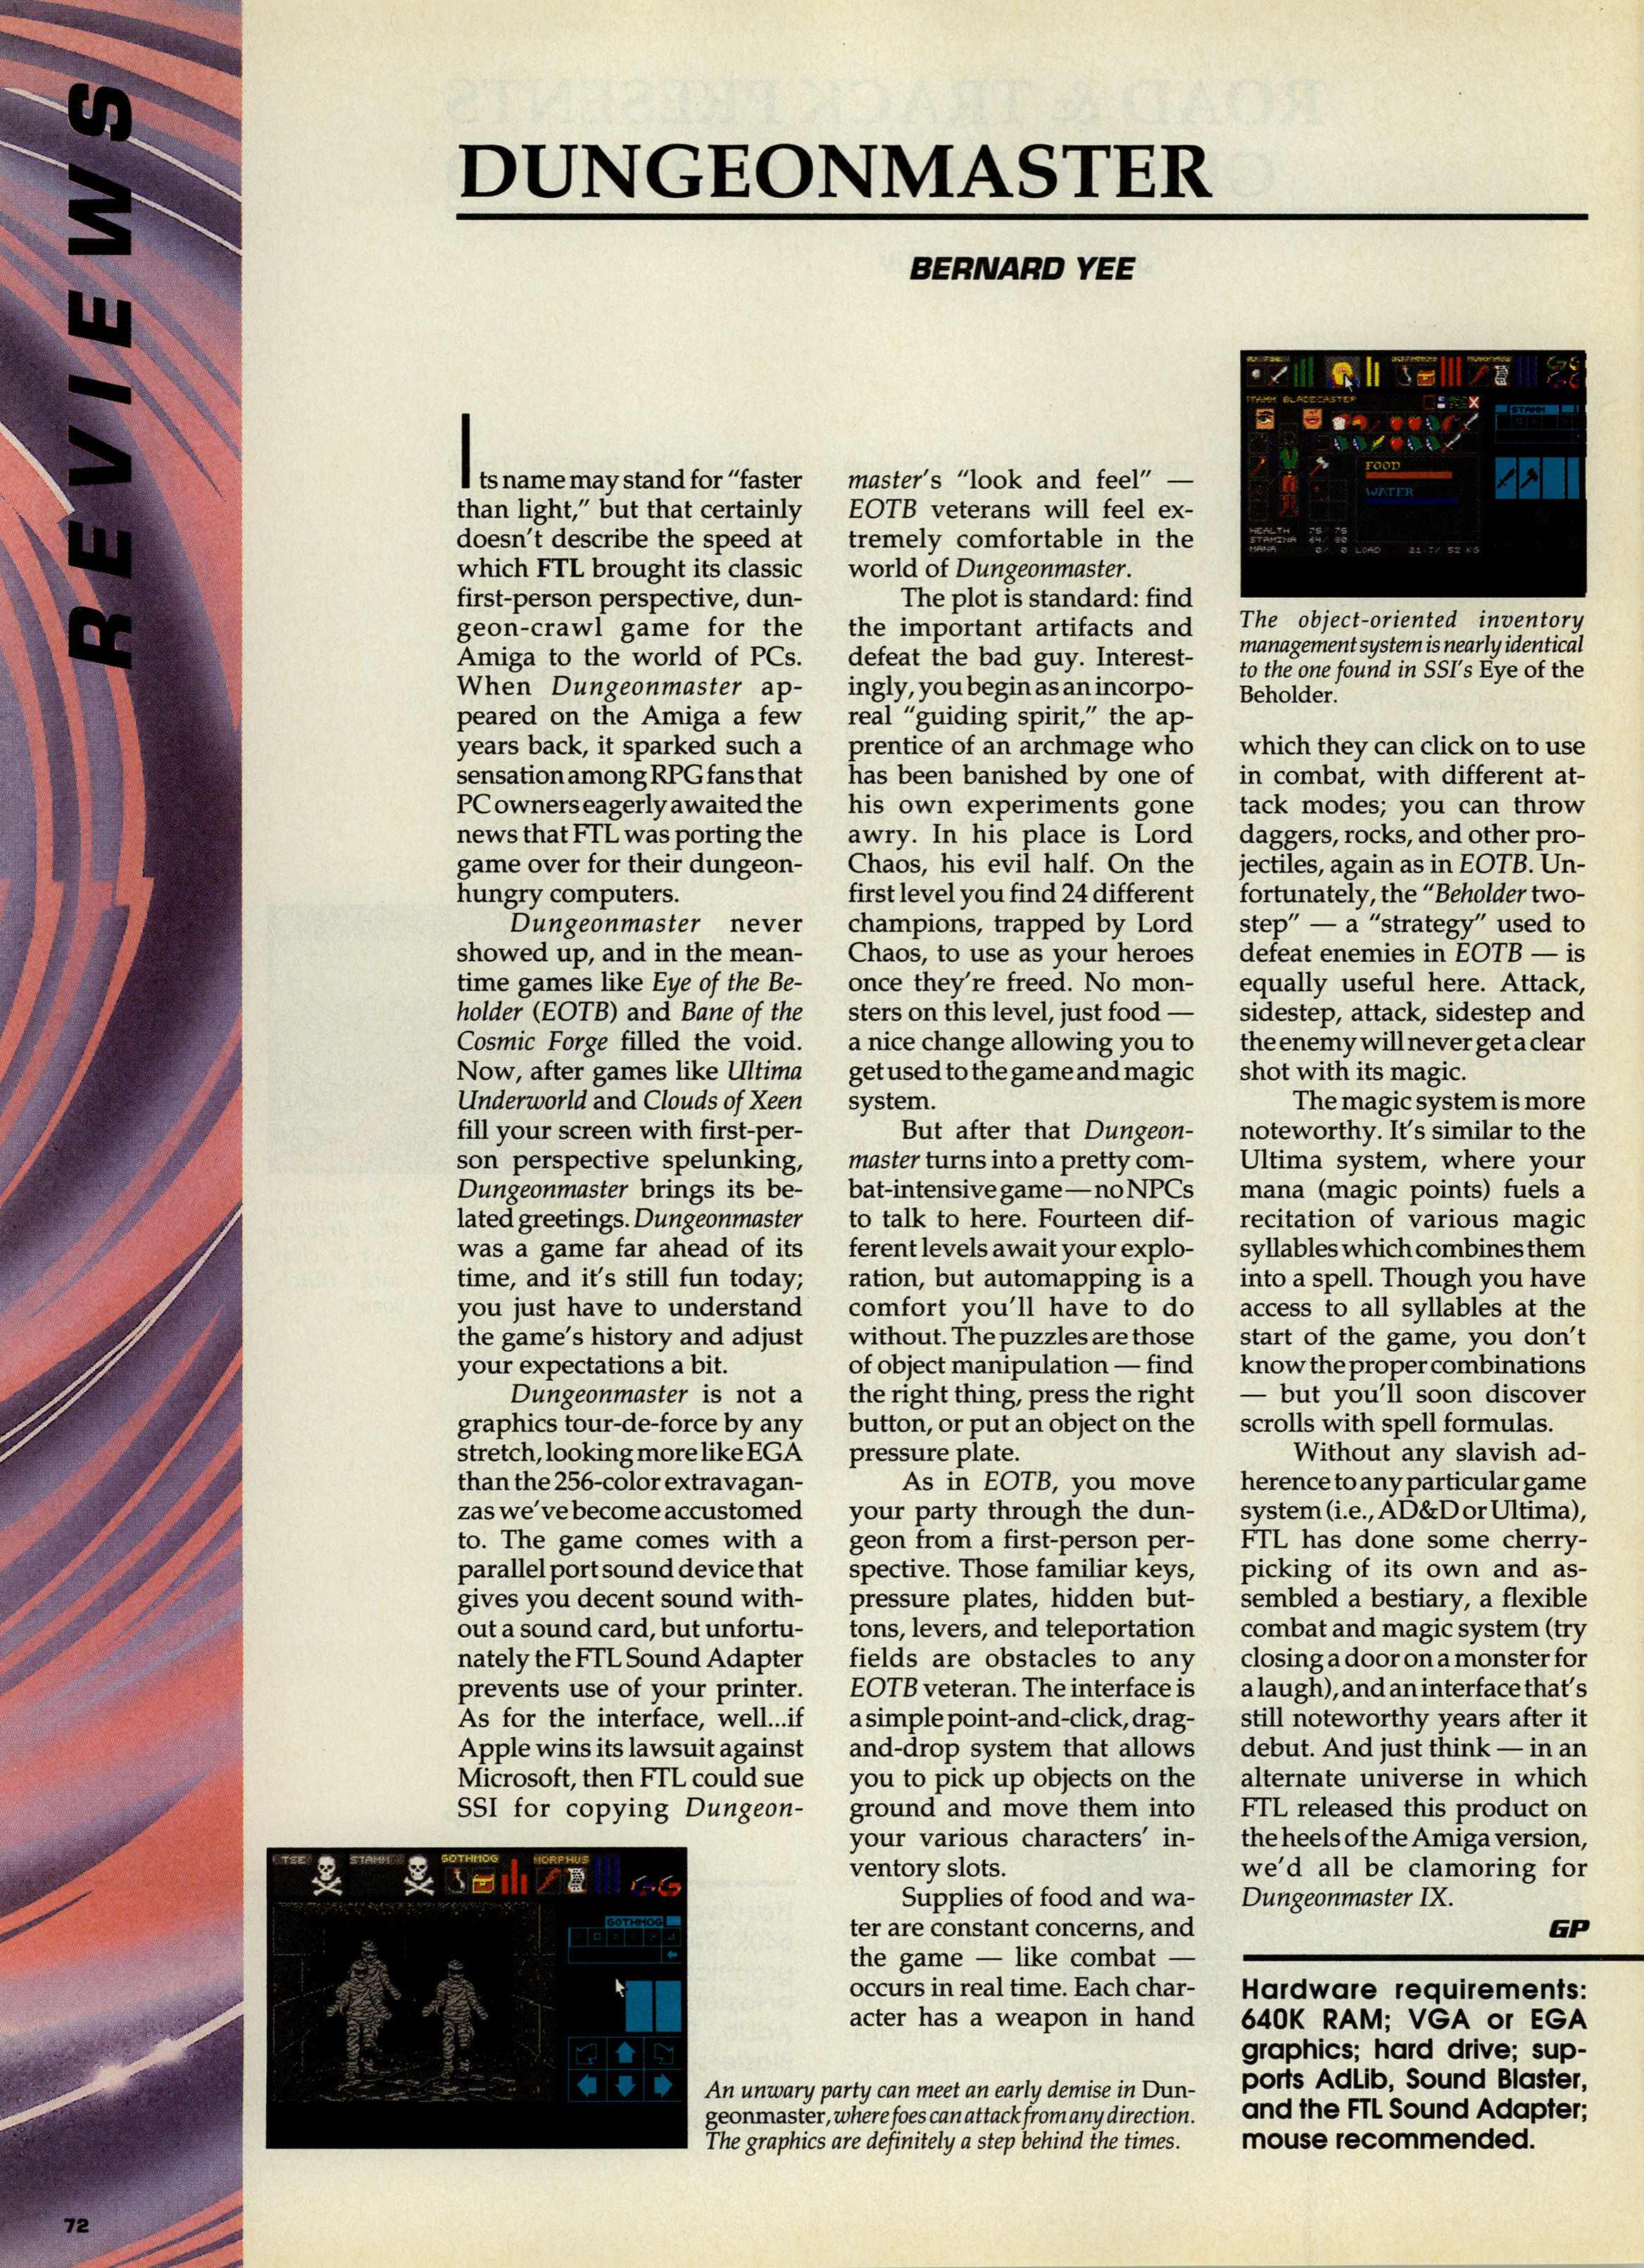 Dungeon Master for PC Review published in Canadian magazine 'Game Player's PC Entertainment', Vol 5 No 5 September-October 1992, Page 72